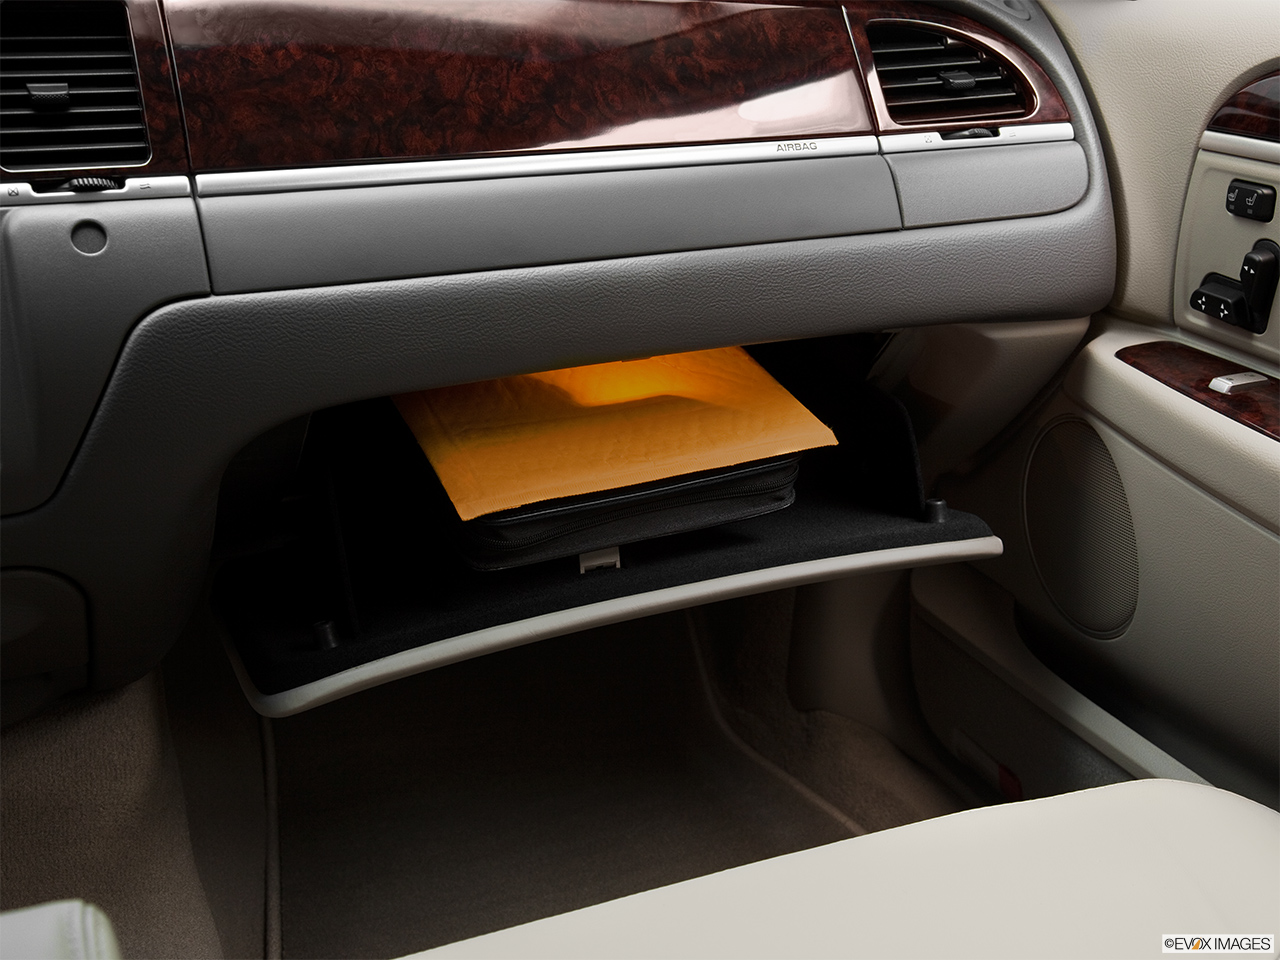 2011 Lincoln Town Car Signature Limited Glove box open.